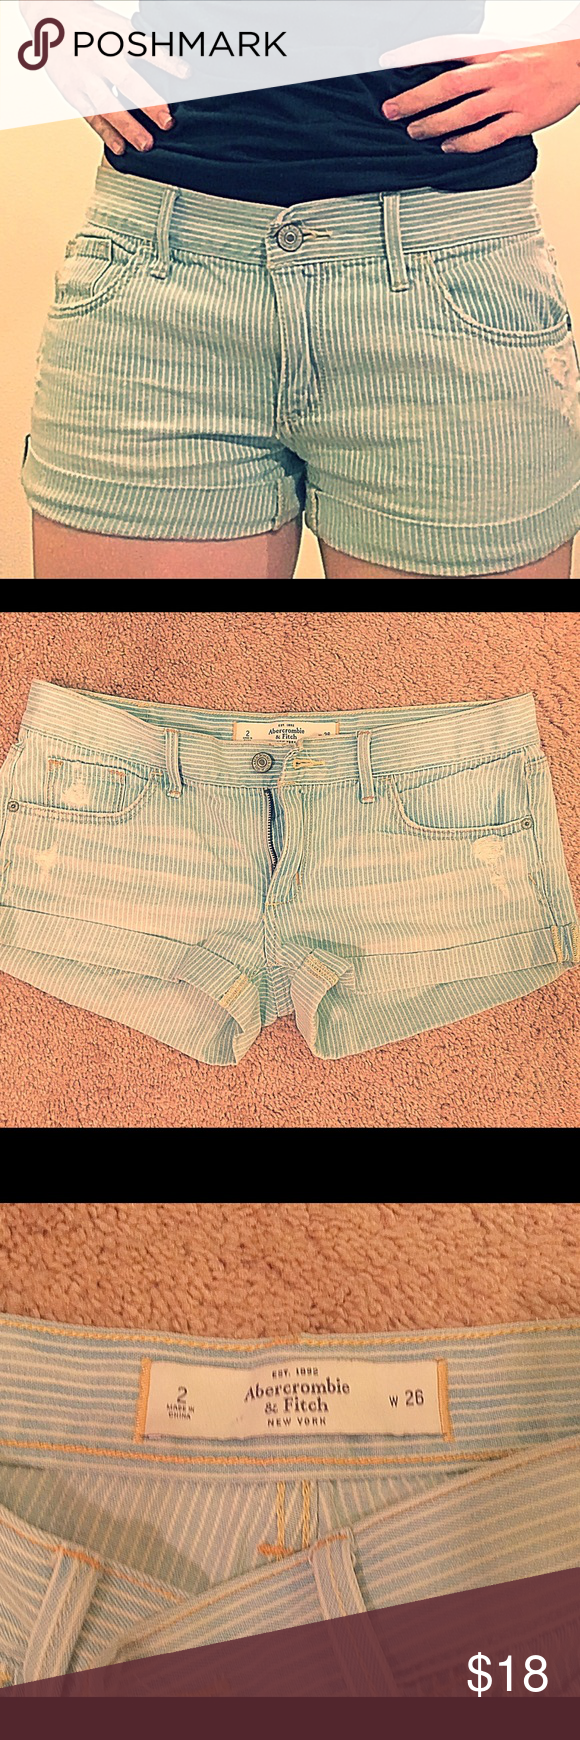 "Abercrombie and Fitch shorts Cute and comfy blue striped Abercrombie and Fitch shorts. Size 2. Length: 10"" Abercrombie & Fitch Shorts Jean Shorts"